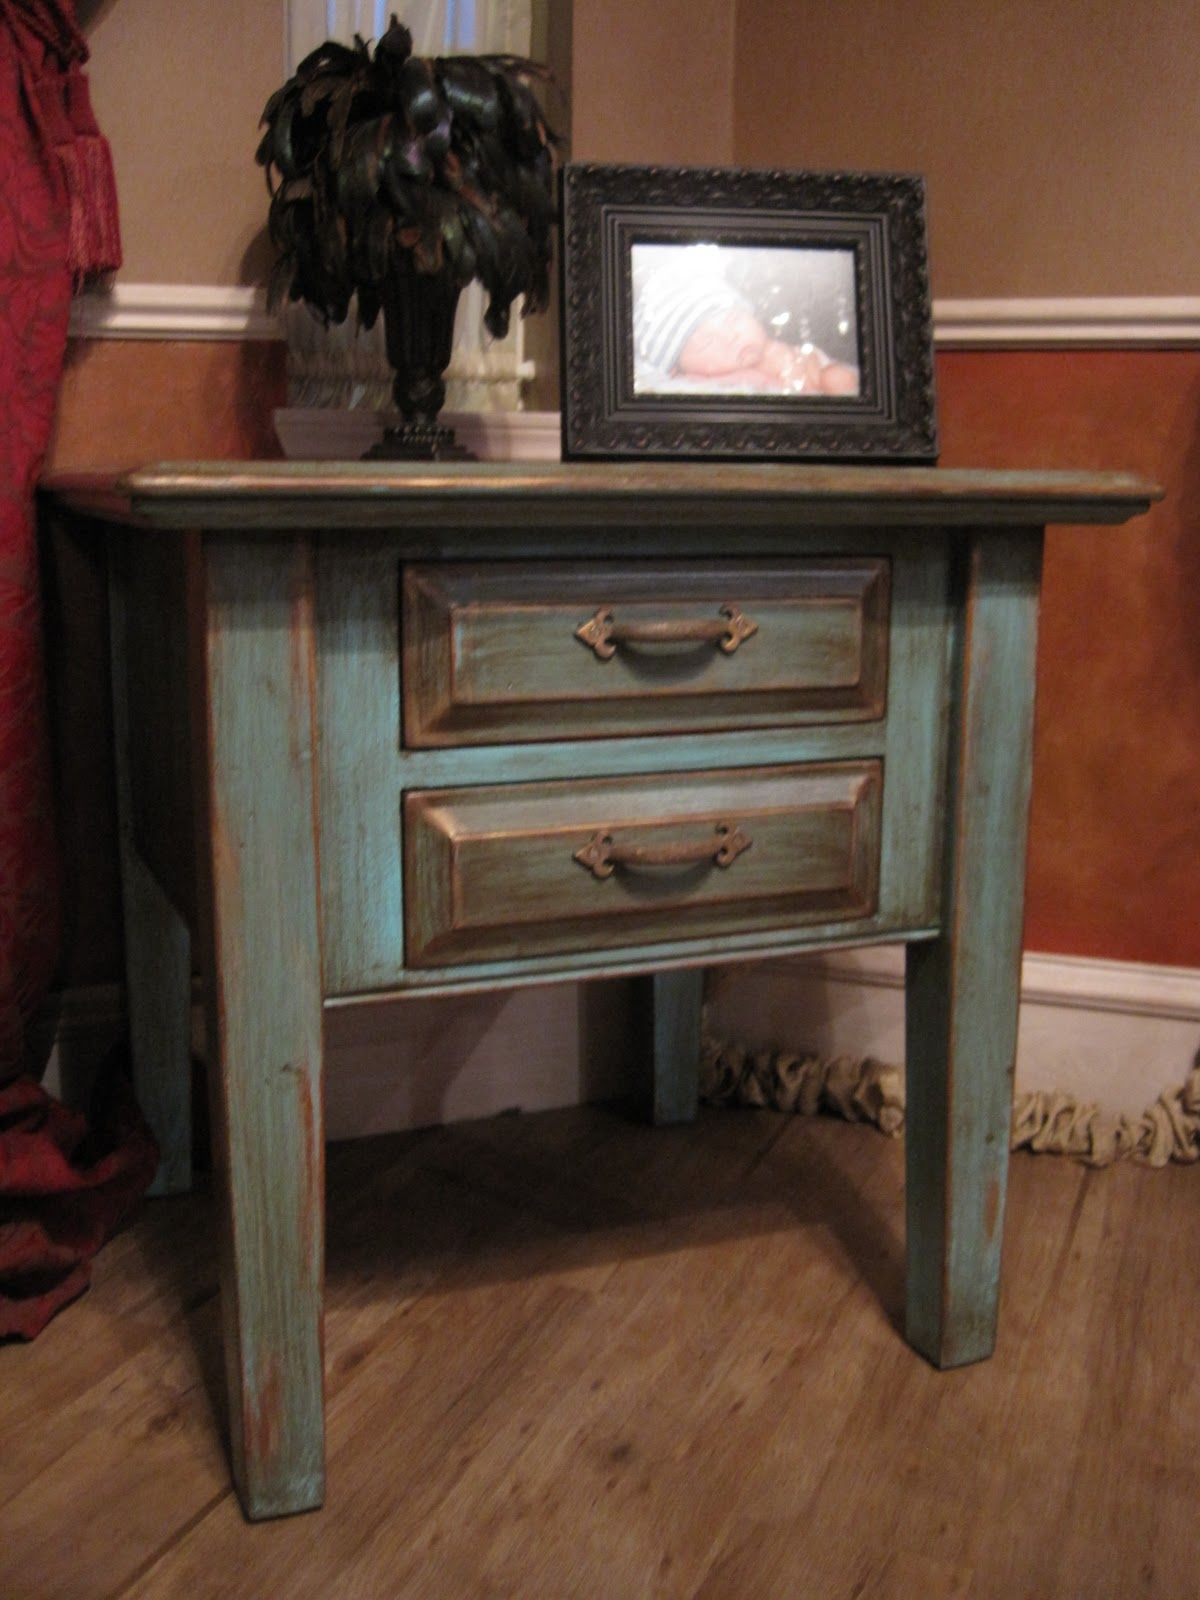 Ordinaire Turquoise End Table With Distressed Gold Highlights Via: Refunk My Junk: